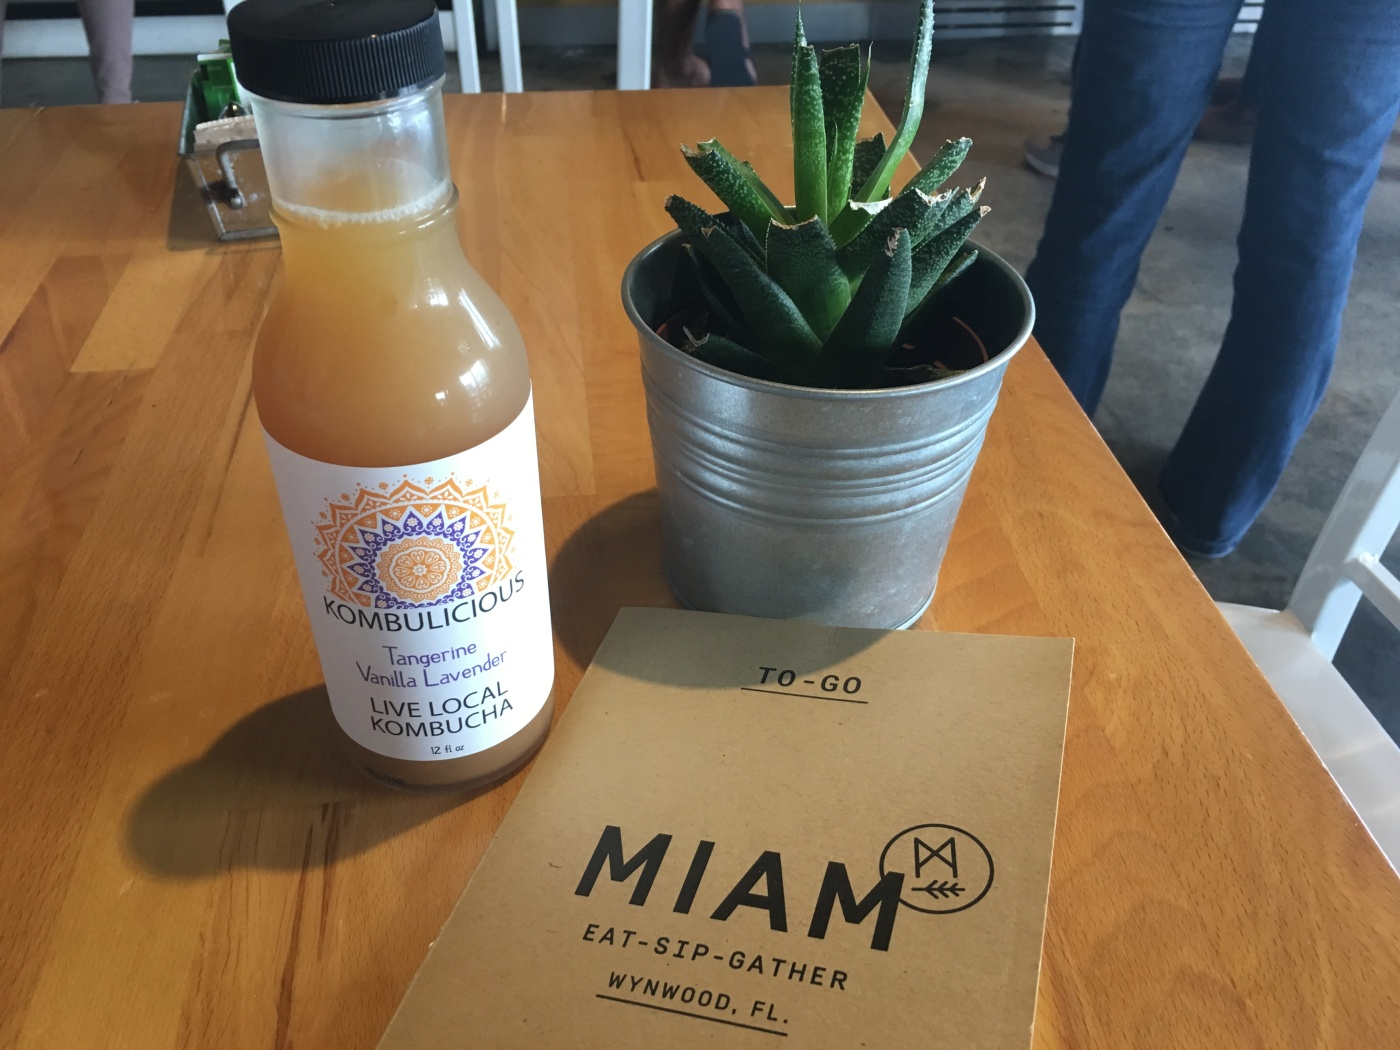 Eat - Sip - Gather - Miam Café in Miami, Florida